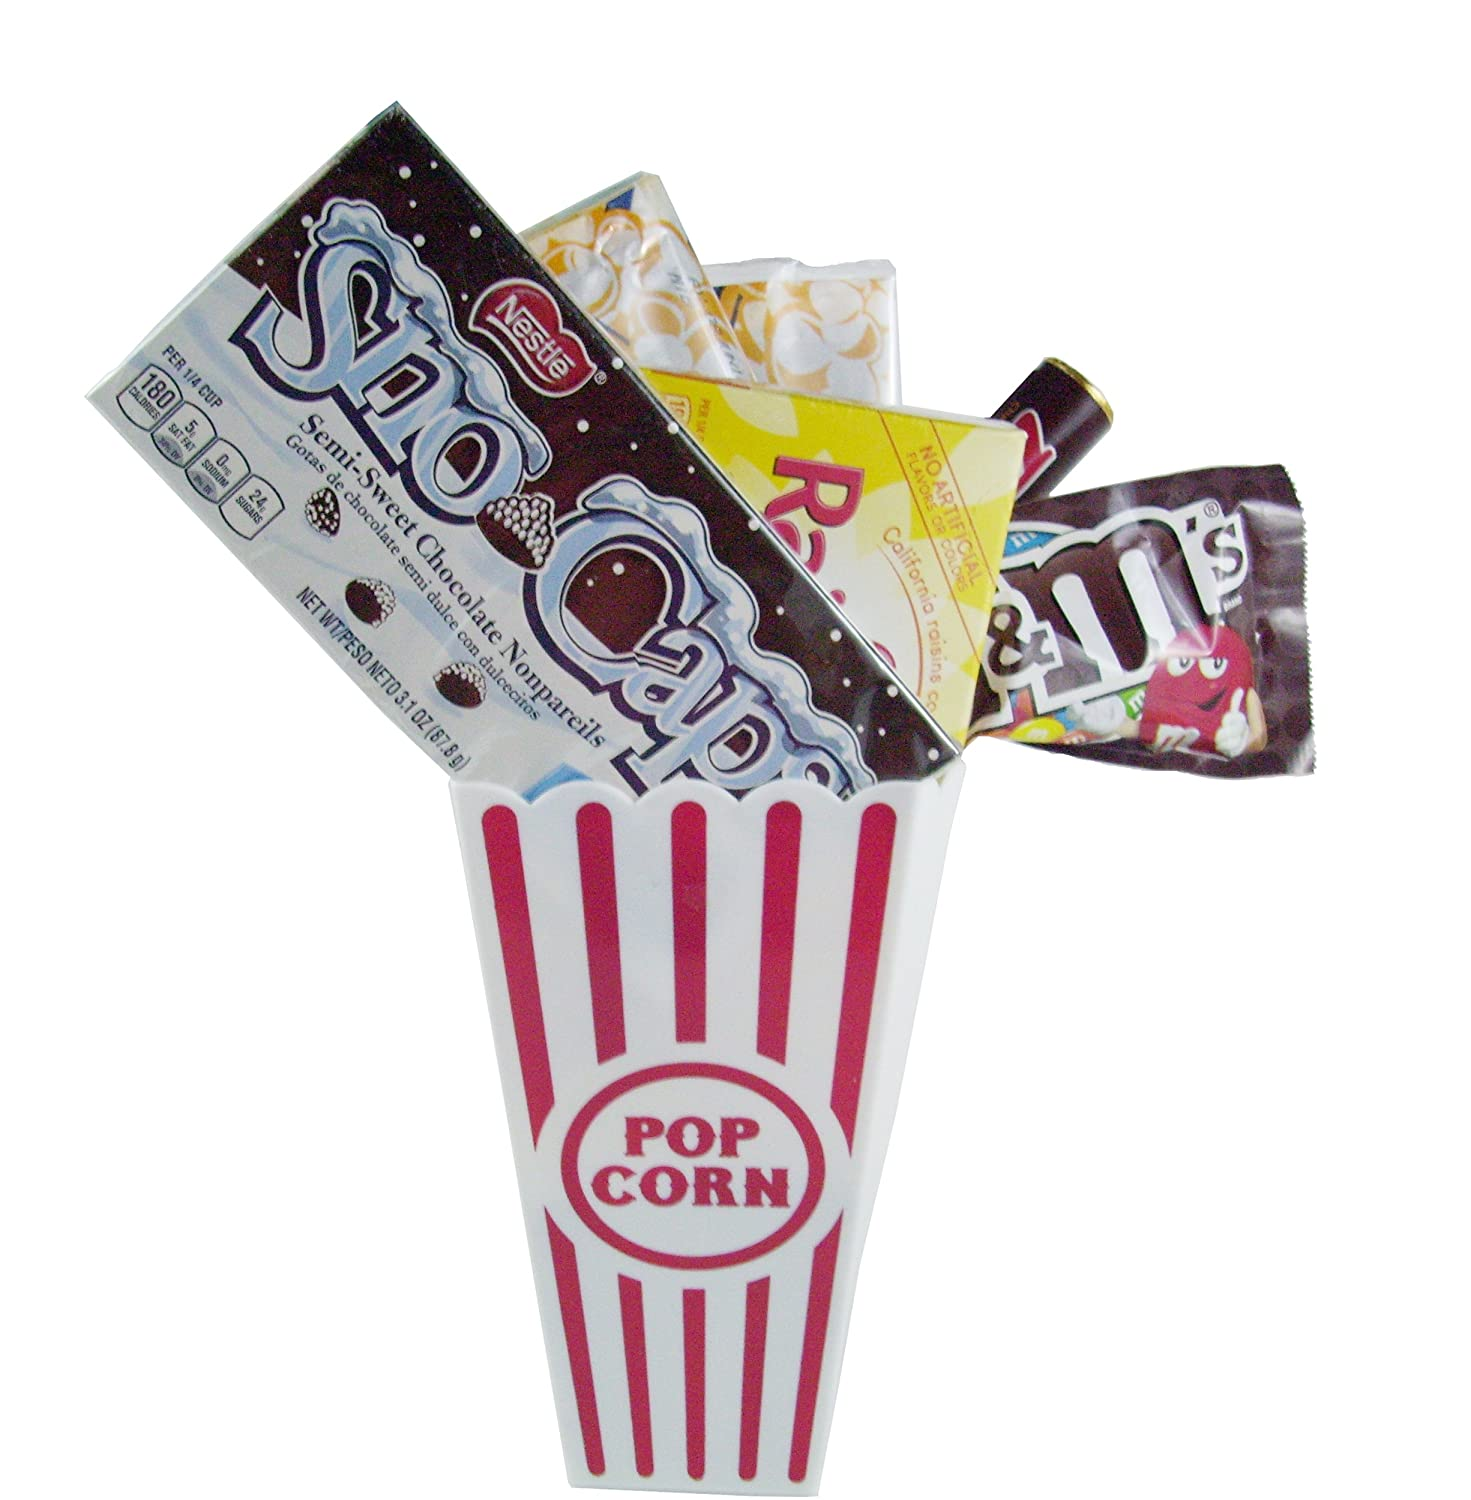 Amazon Com Movie Night Popcorn And Candy Gift Basket Includes Movie Theater Butter Popcorn And Concession Stand Candy Snow Caps Grocery Gourmet Food